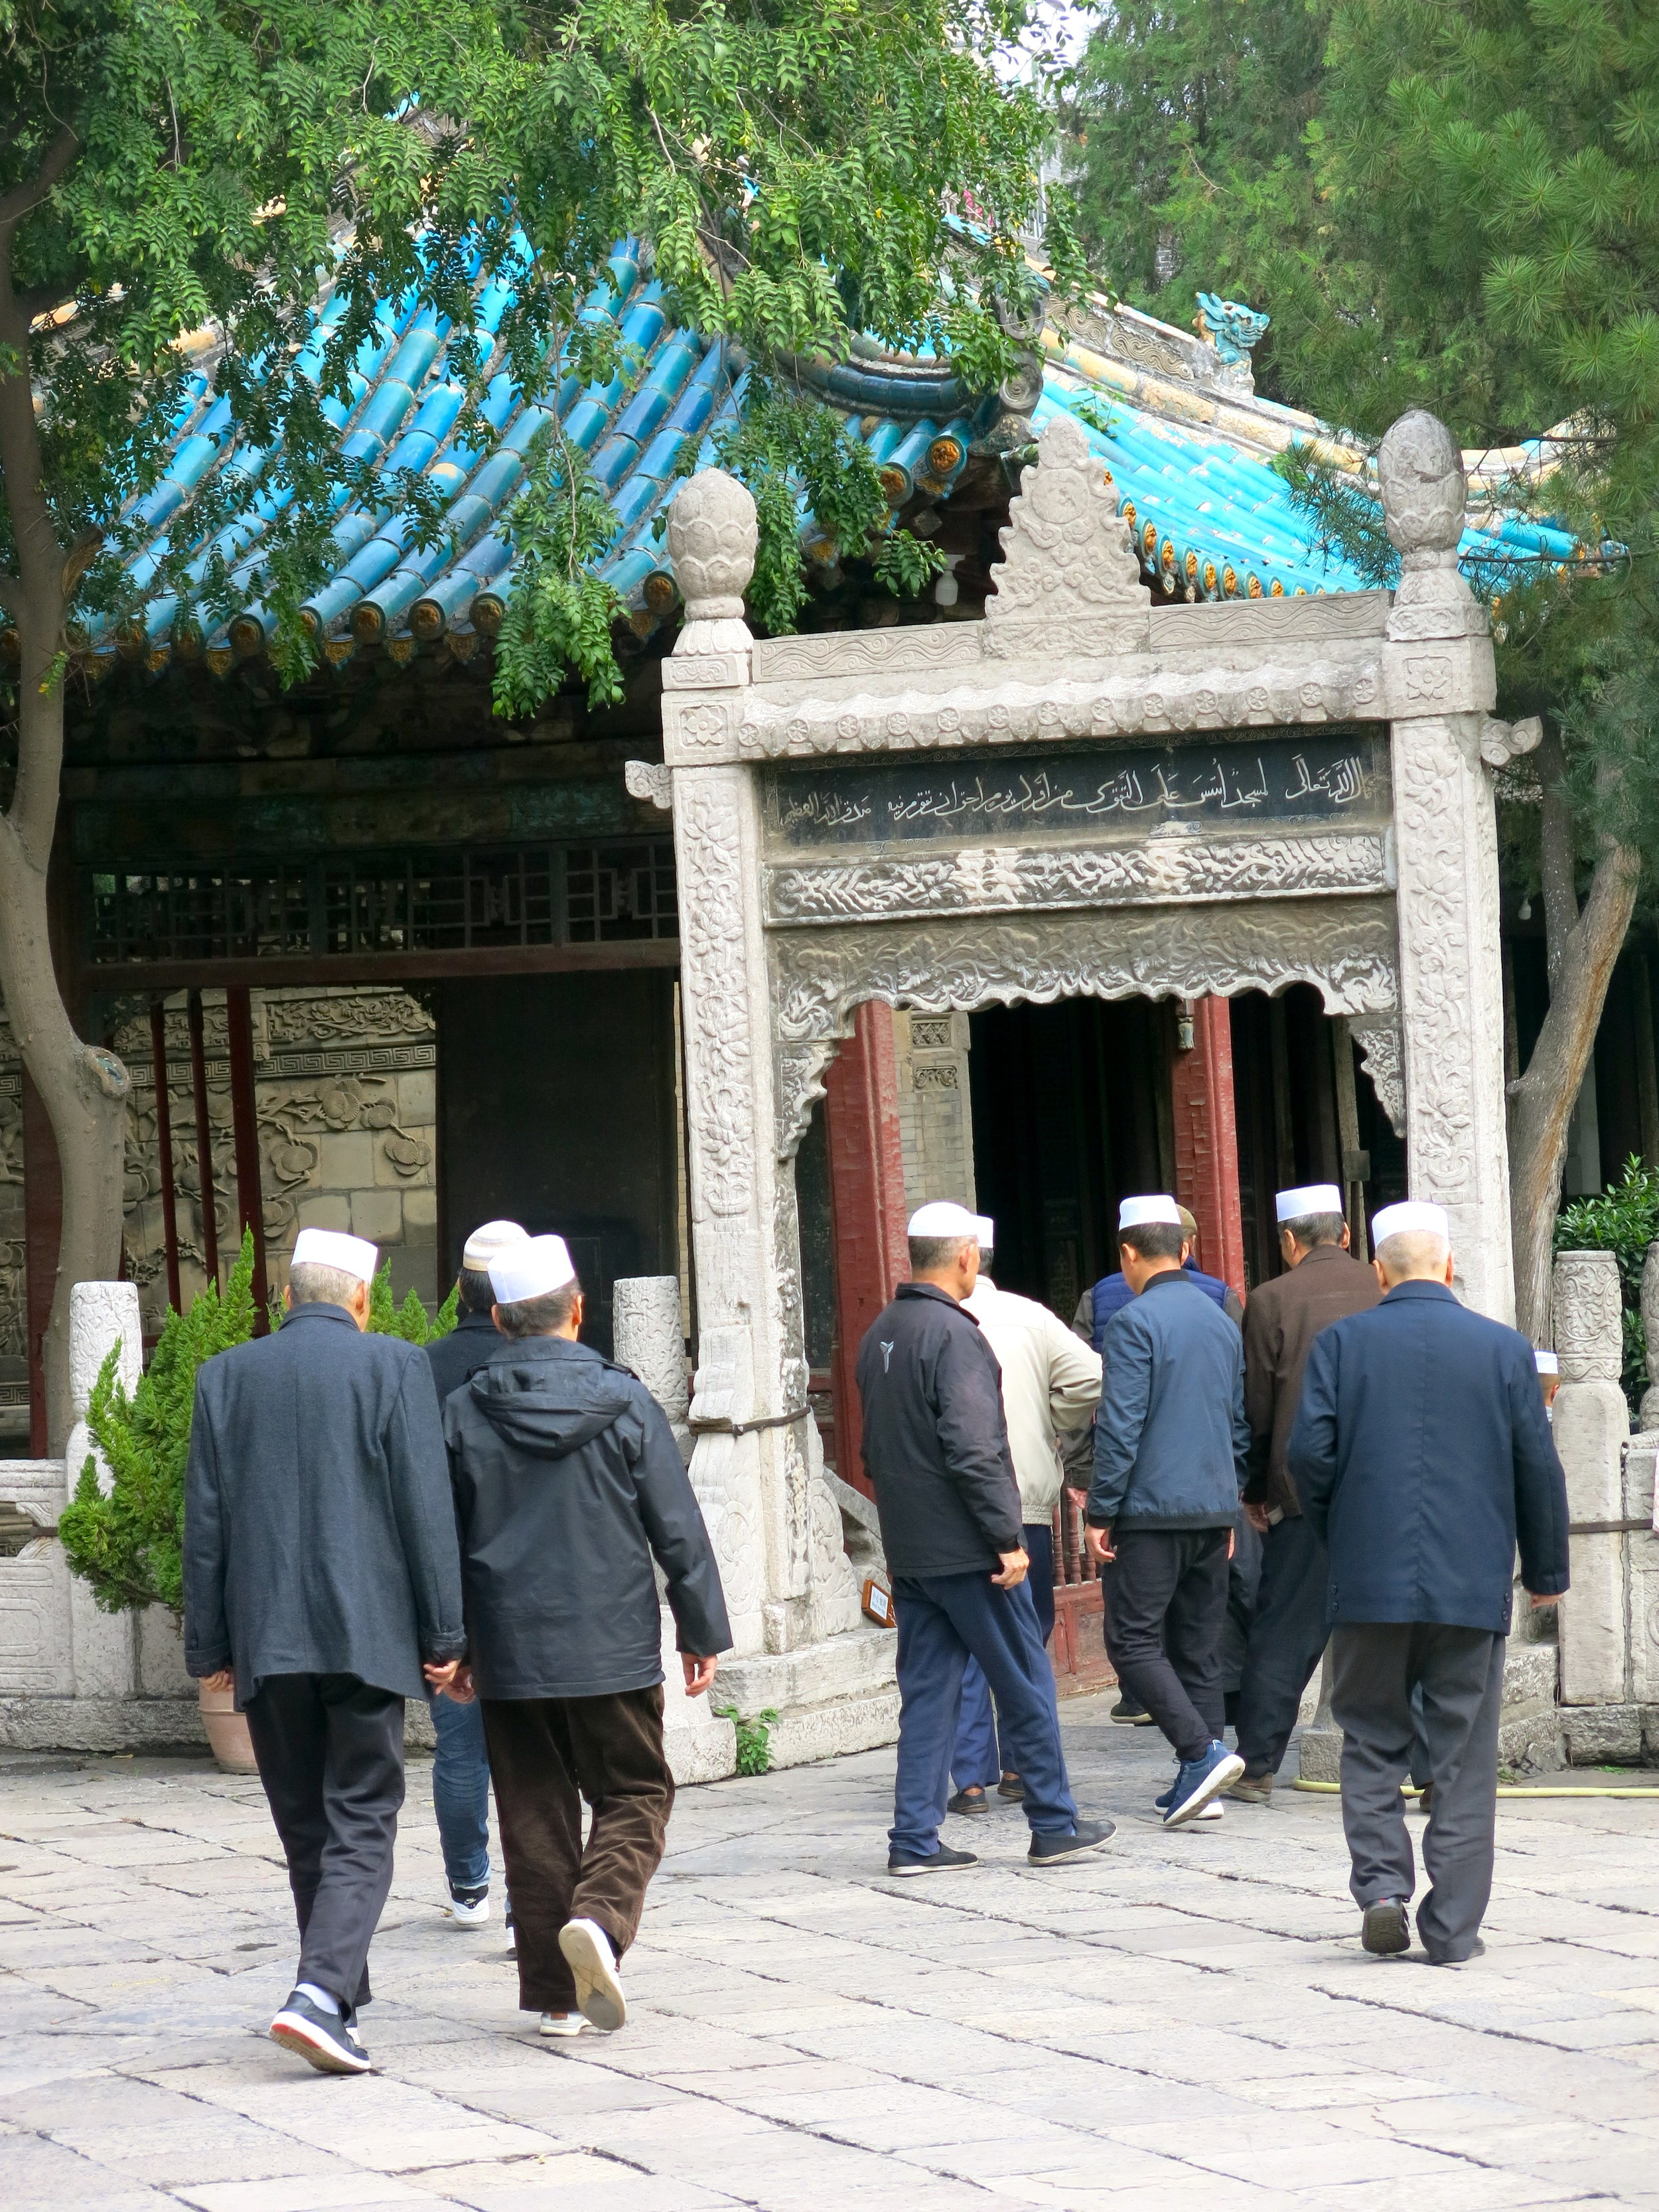 Men from the Muslim Hui community leaving the great mosque